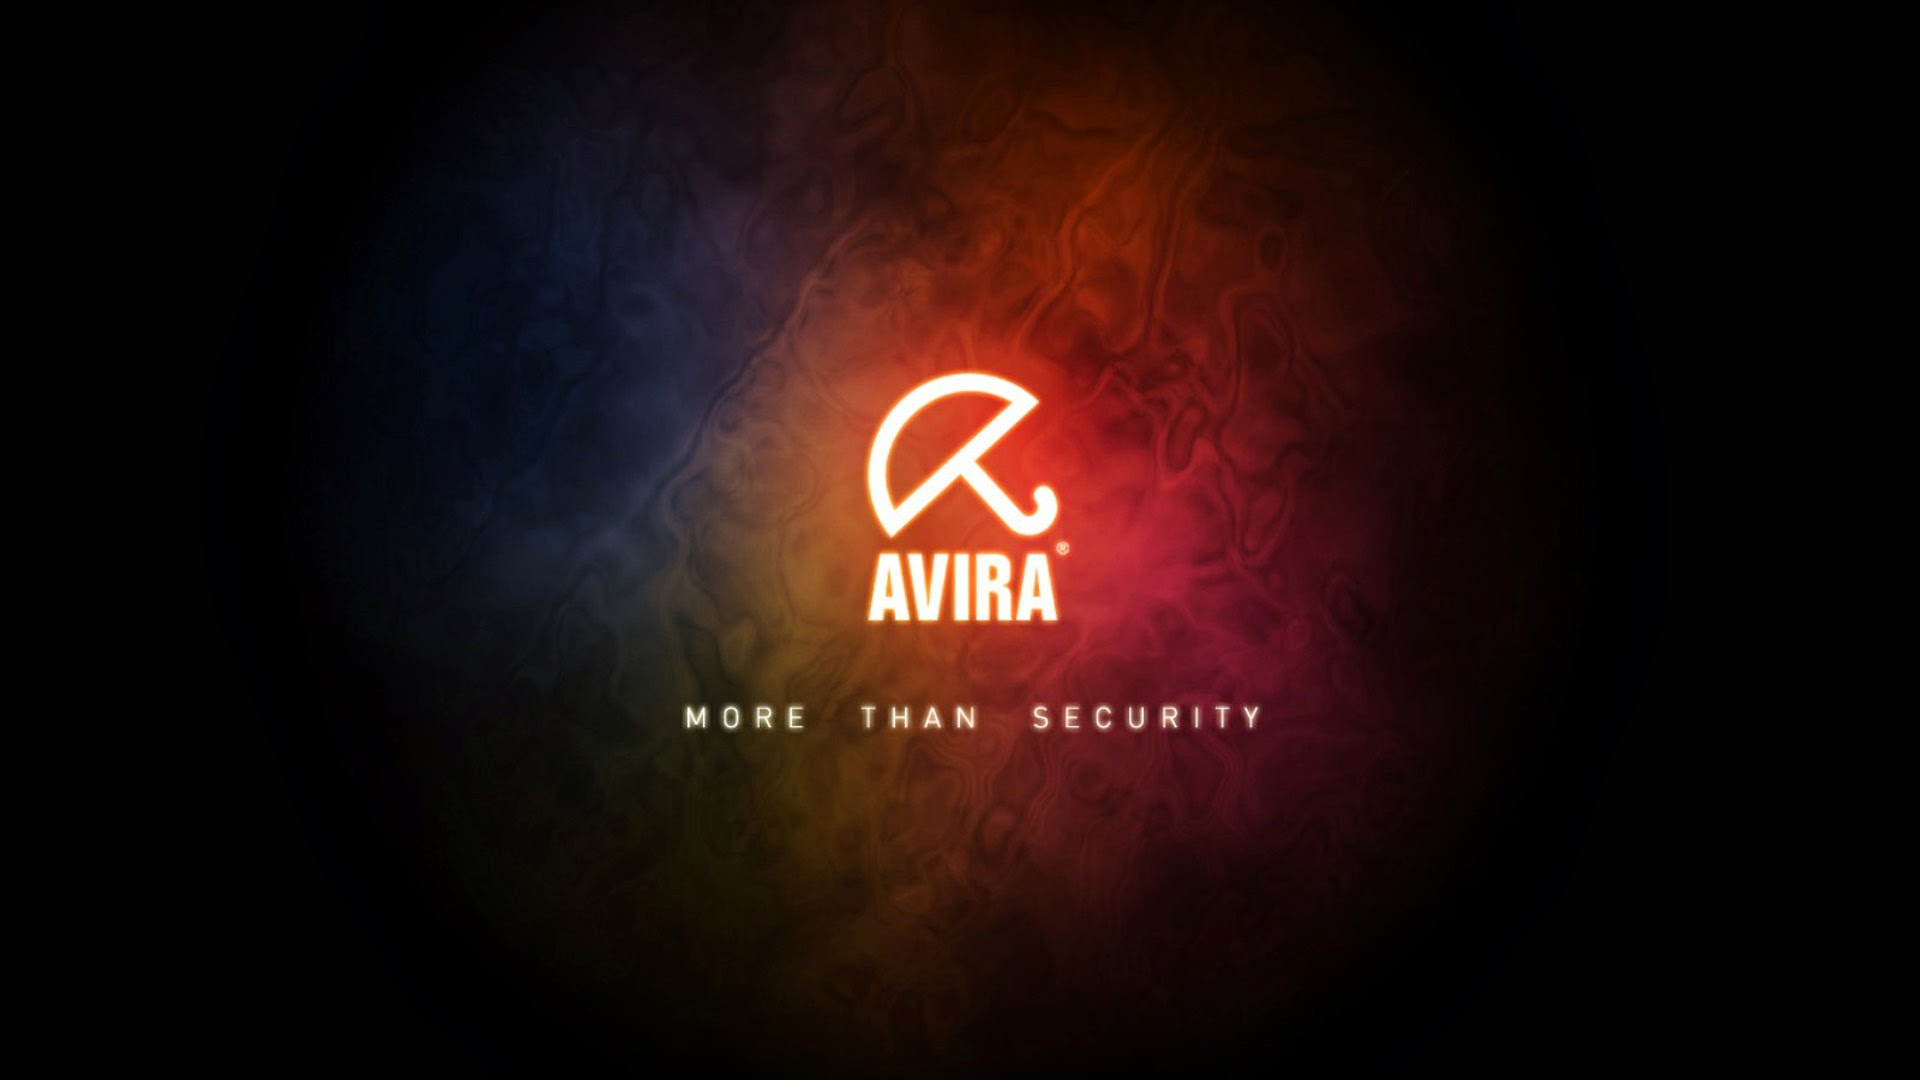 Avira Logo Dark Background u1 HD Wallpaper 1920x1080